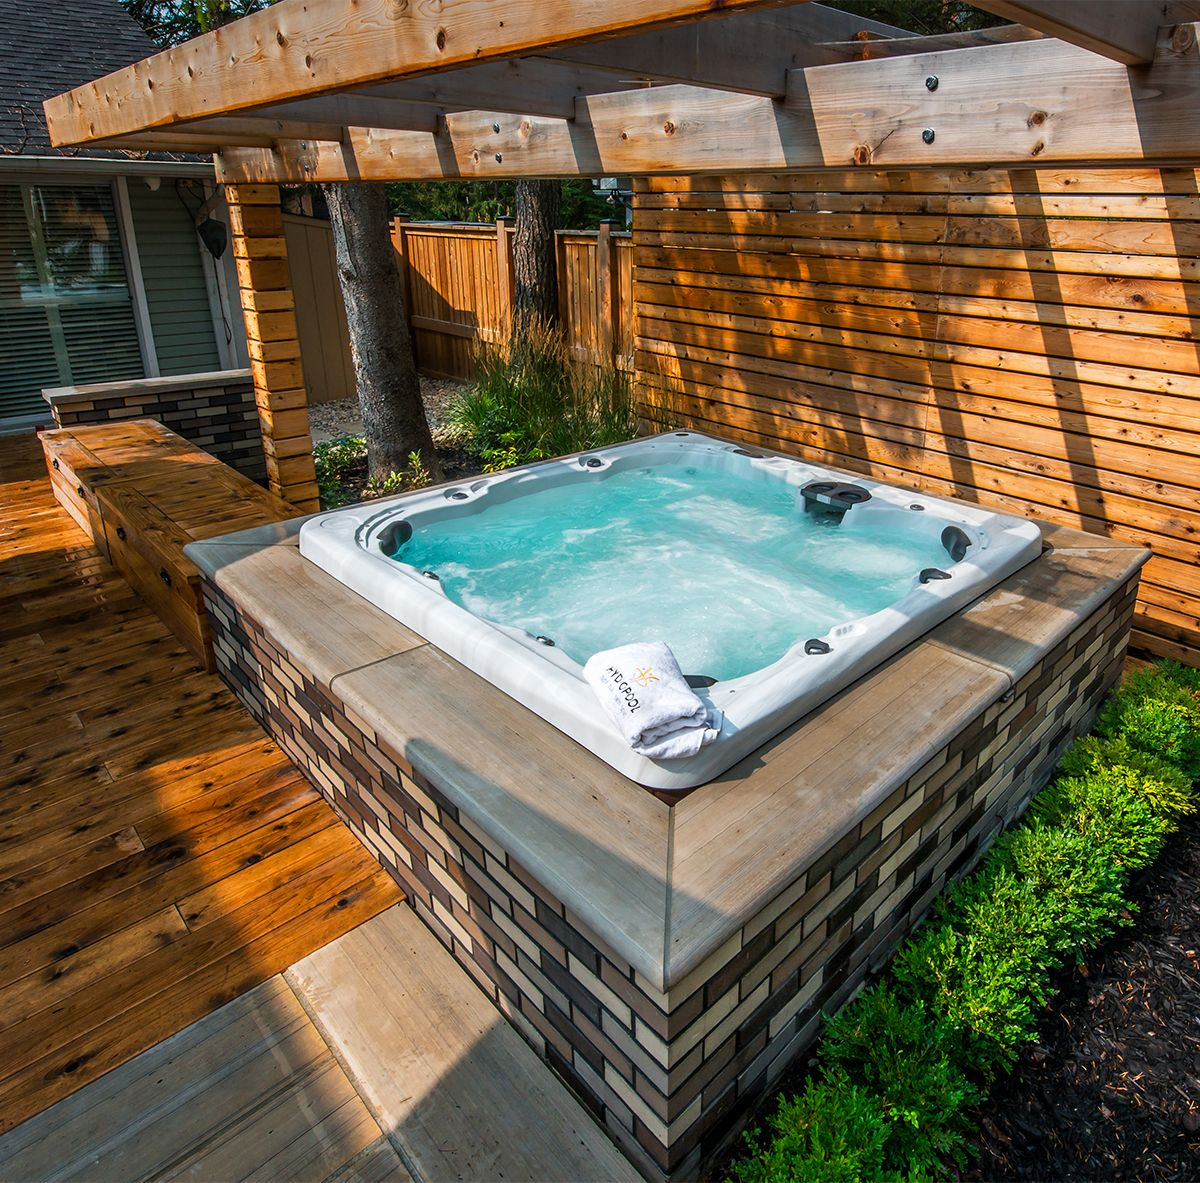 medium resolution of the wood and brick combination of this above ground hot tub install is beautifully done